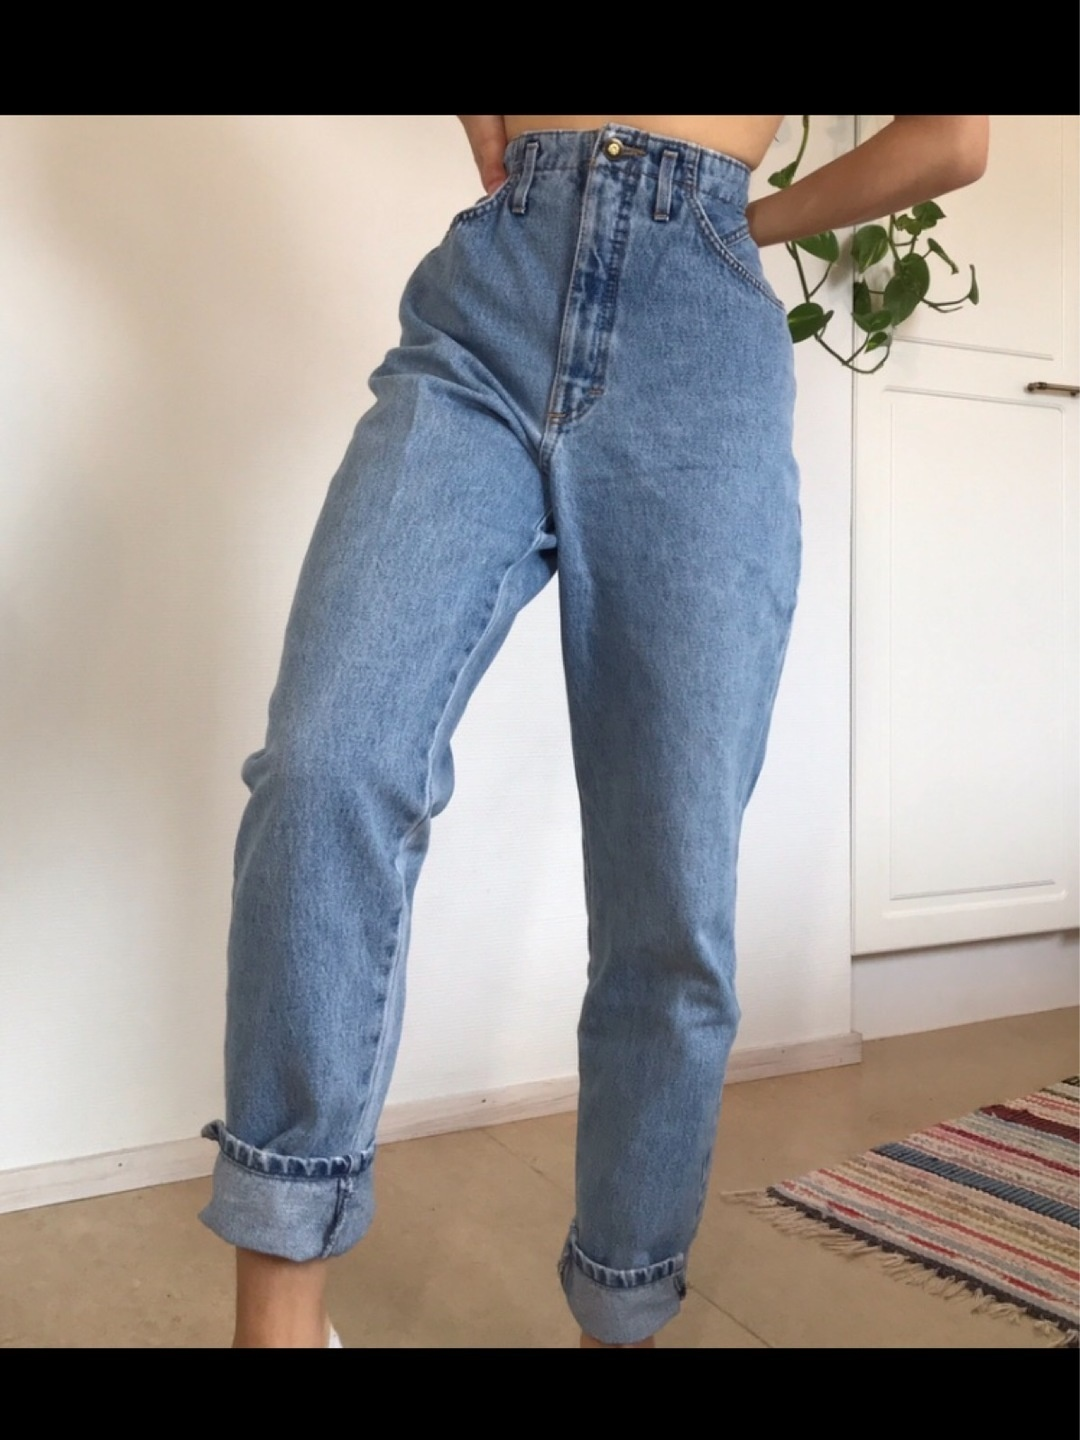 Women's trousers & jeans - VINTAGE photo 1